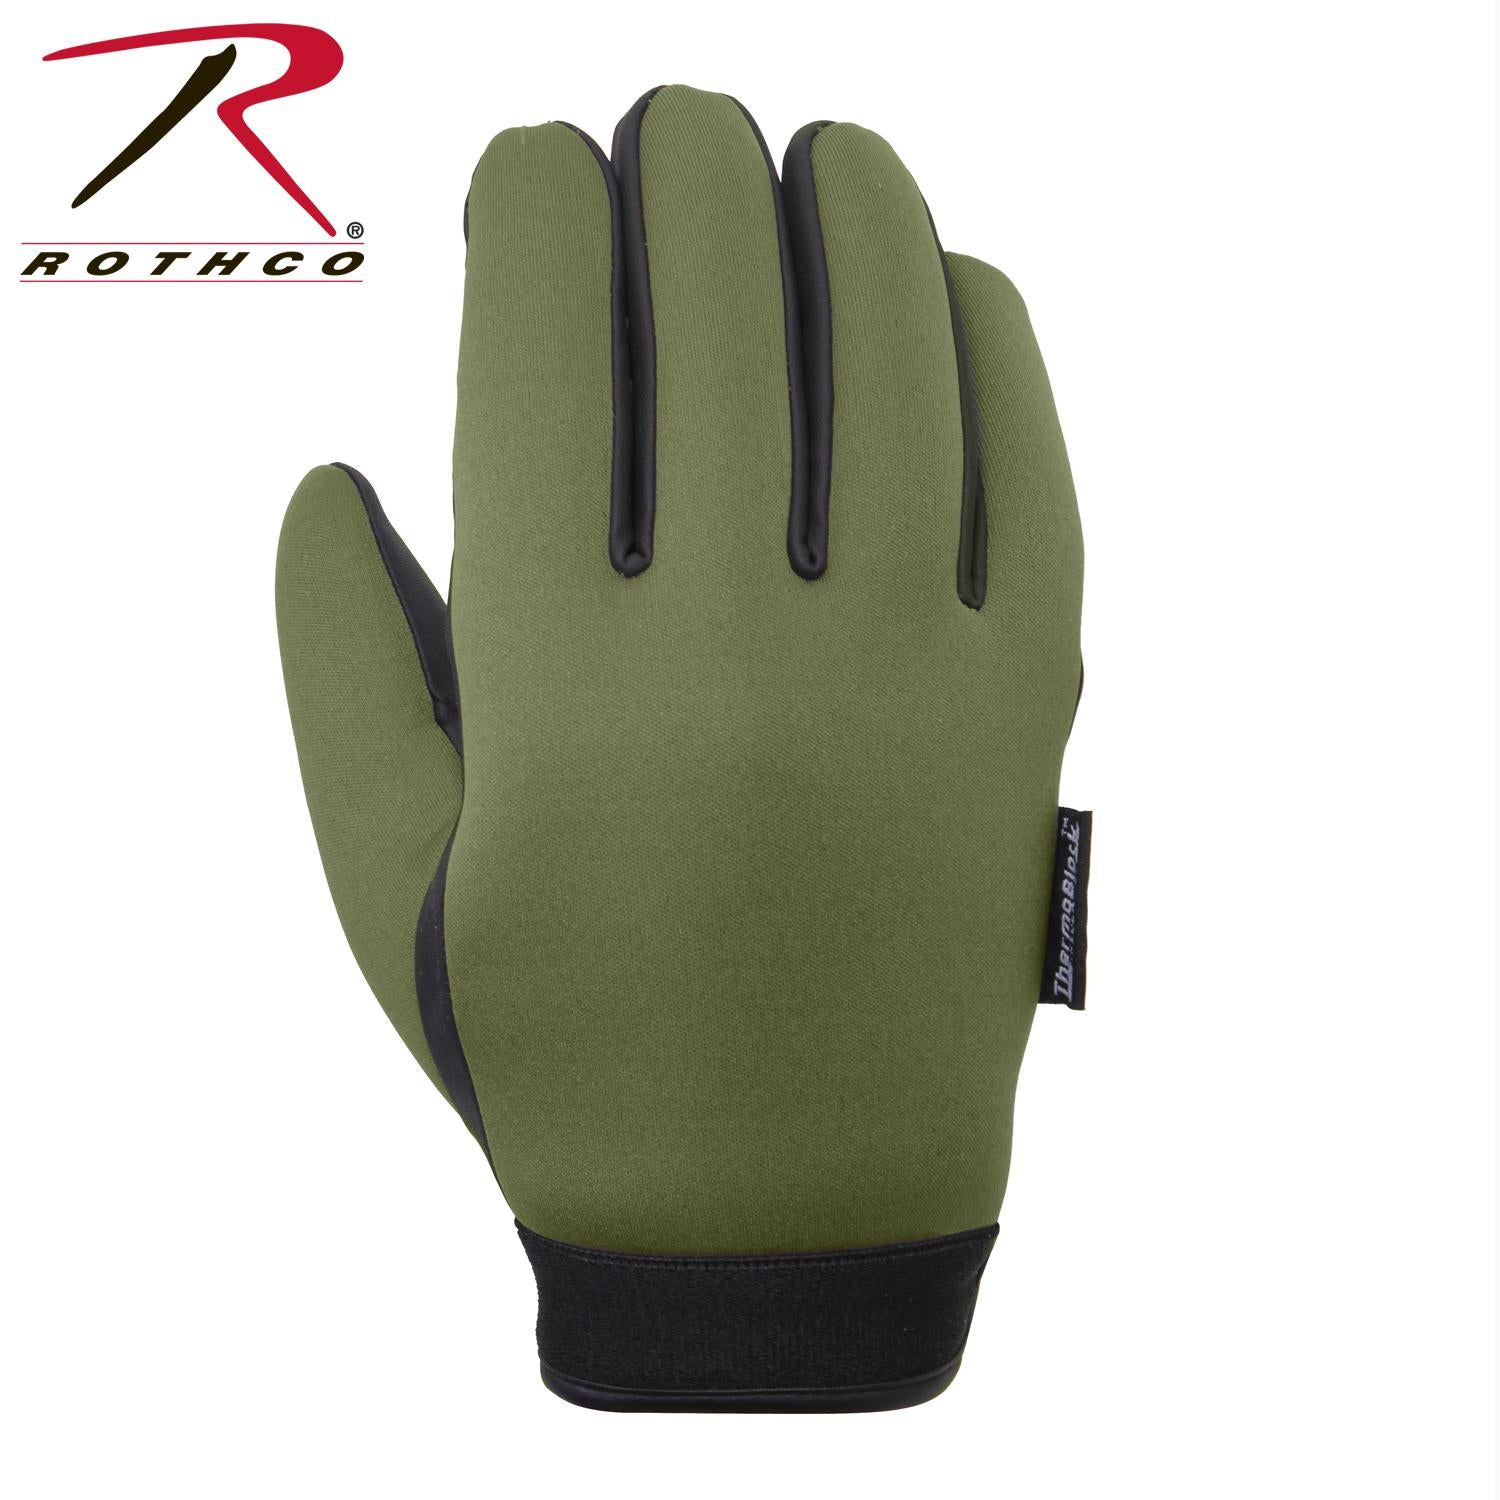 Rothco Waterproof Insulated Neoprene Duty Gloves - Olive Drab / XL